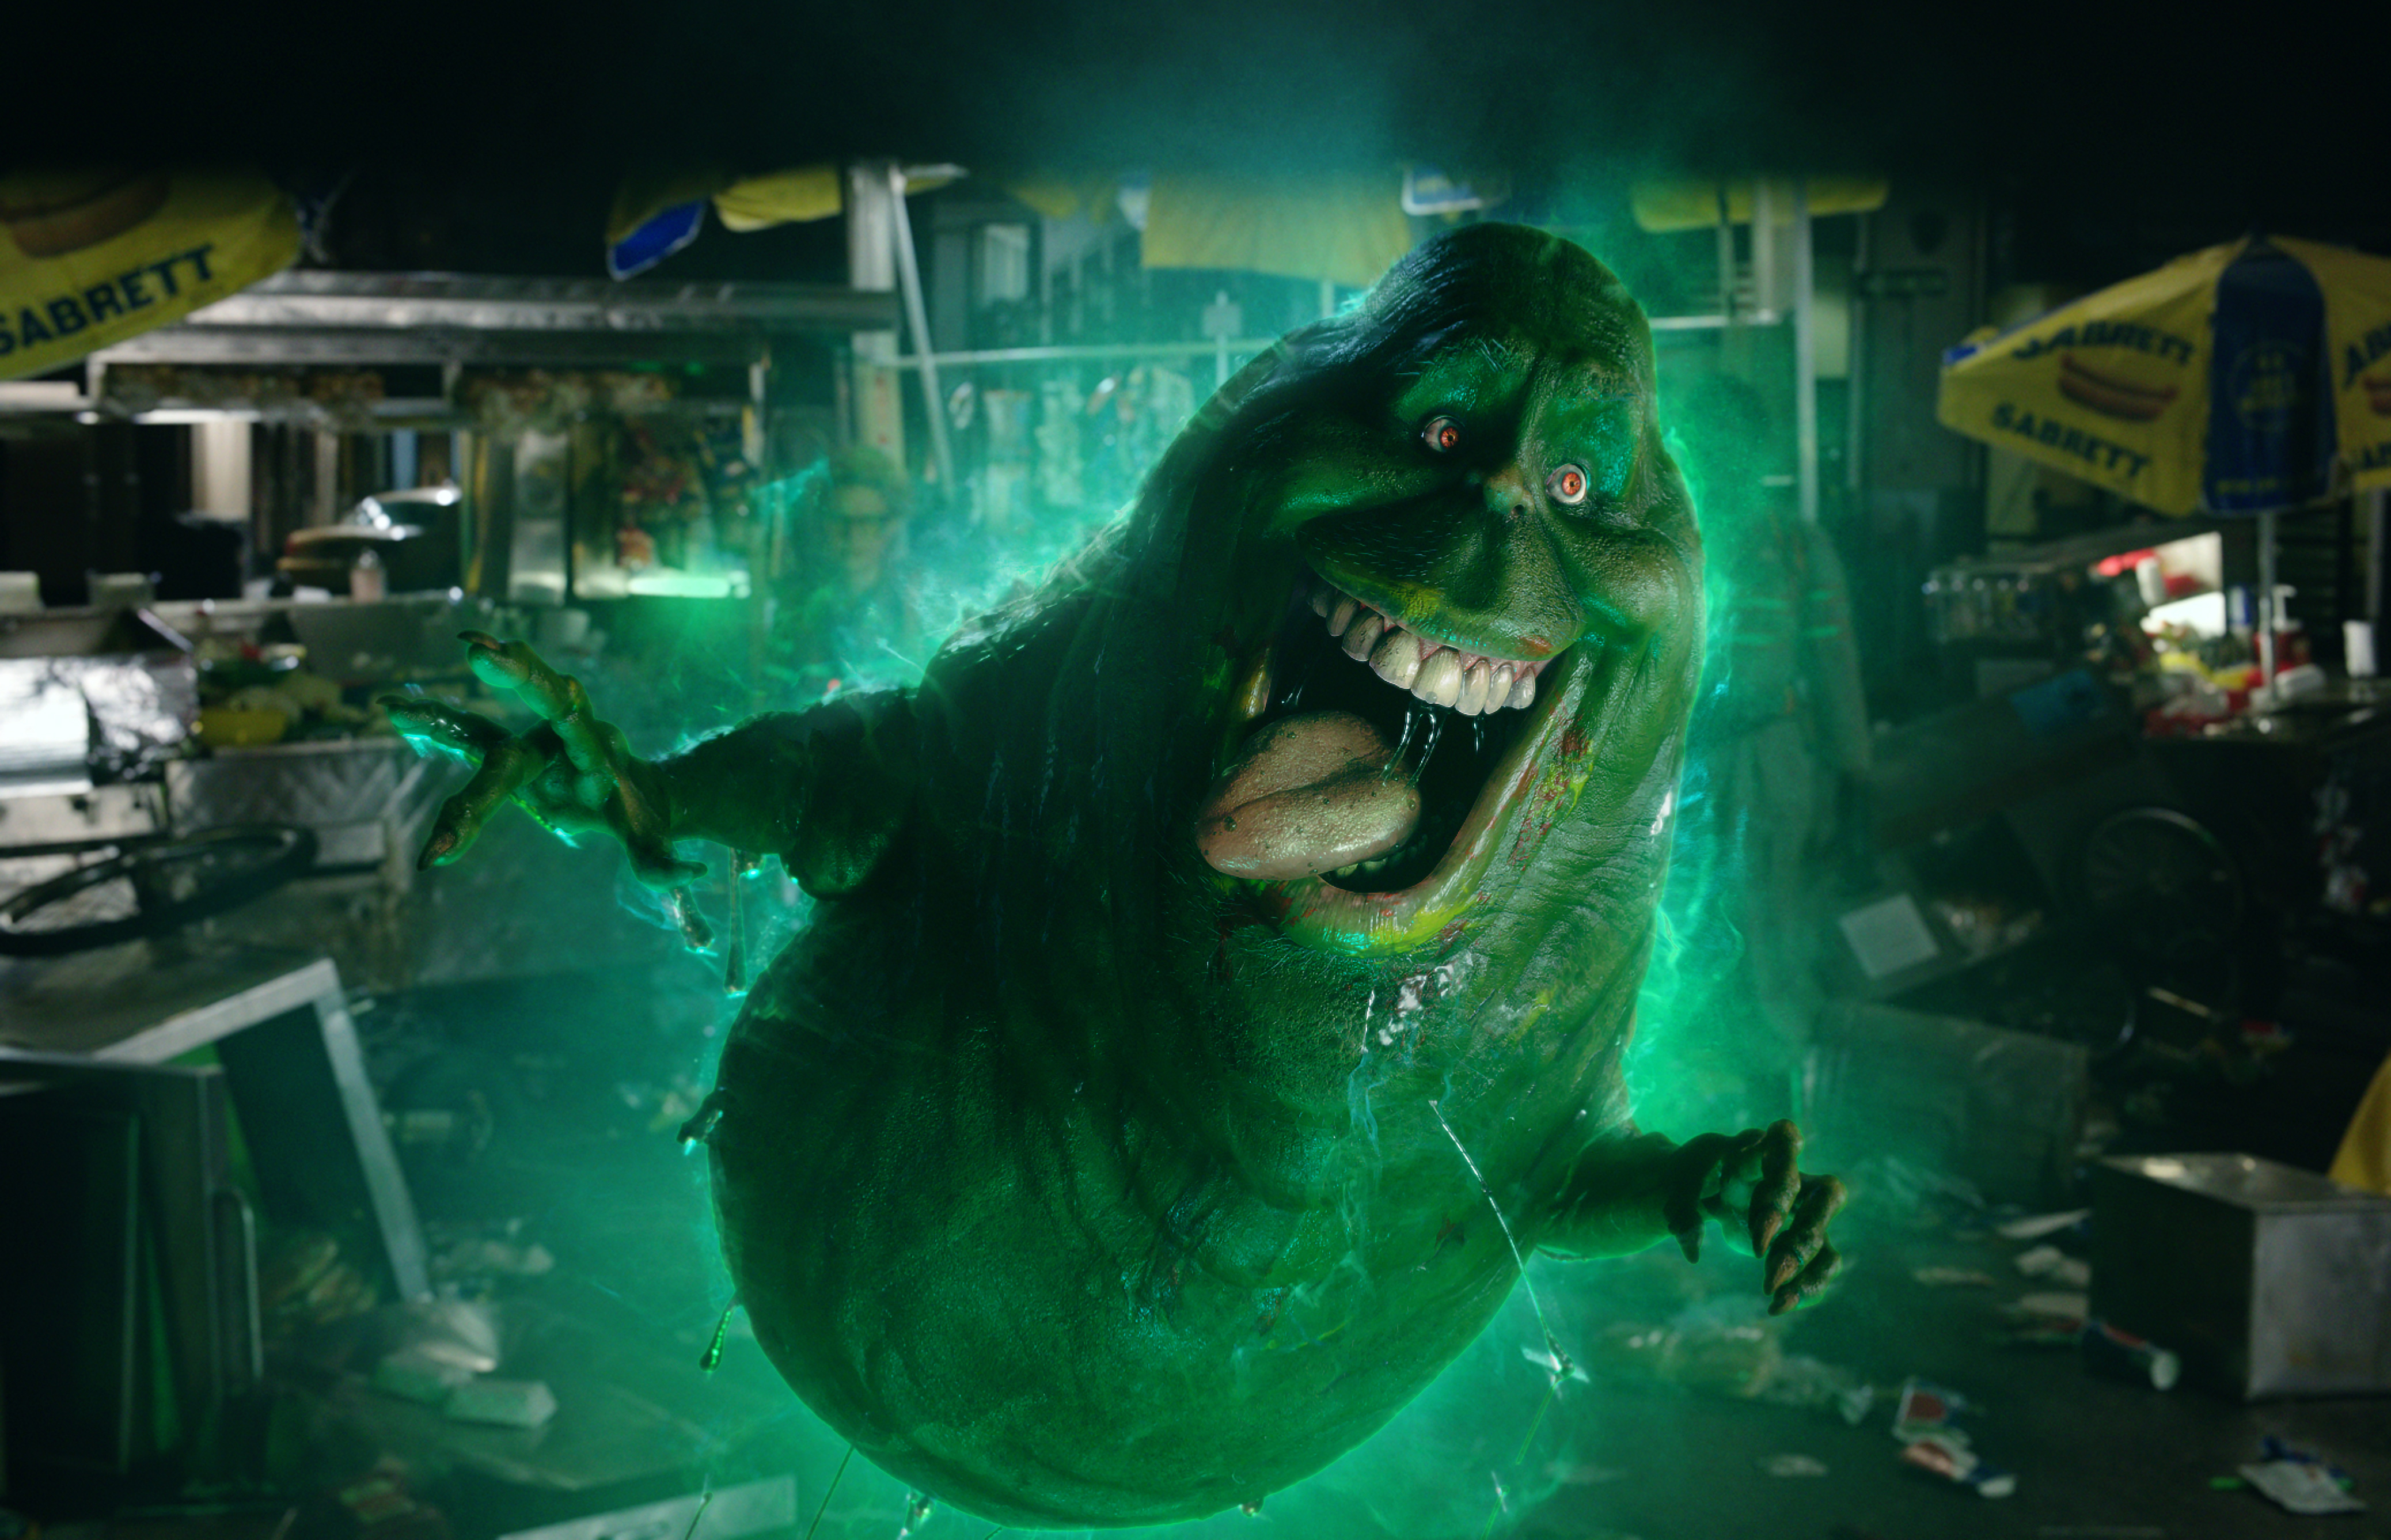 slimer in ghostbusters 5k, hd movies, 4k wallpapers, images